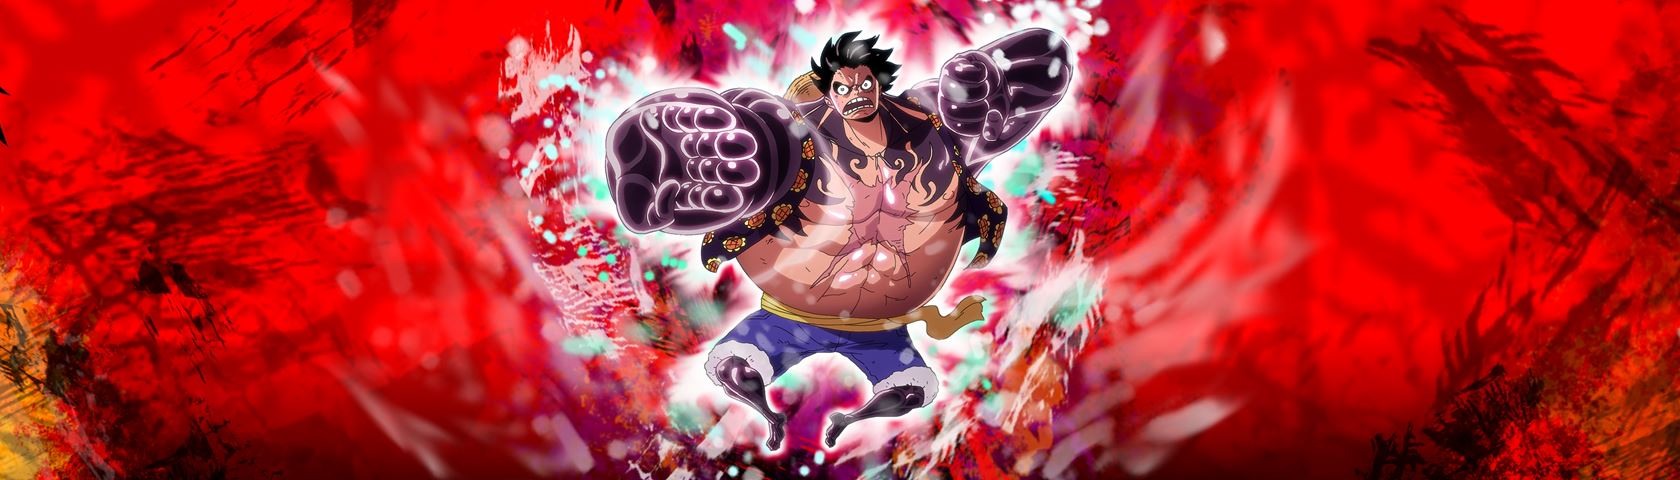 One Piece Luffy Triple Monitor Wallpaper HD